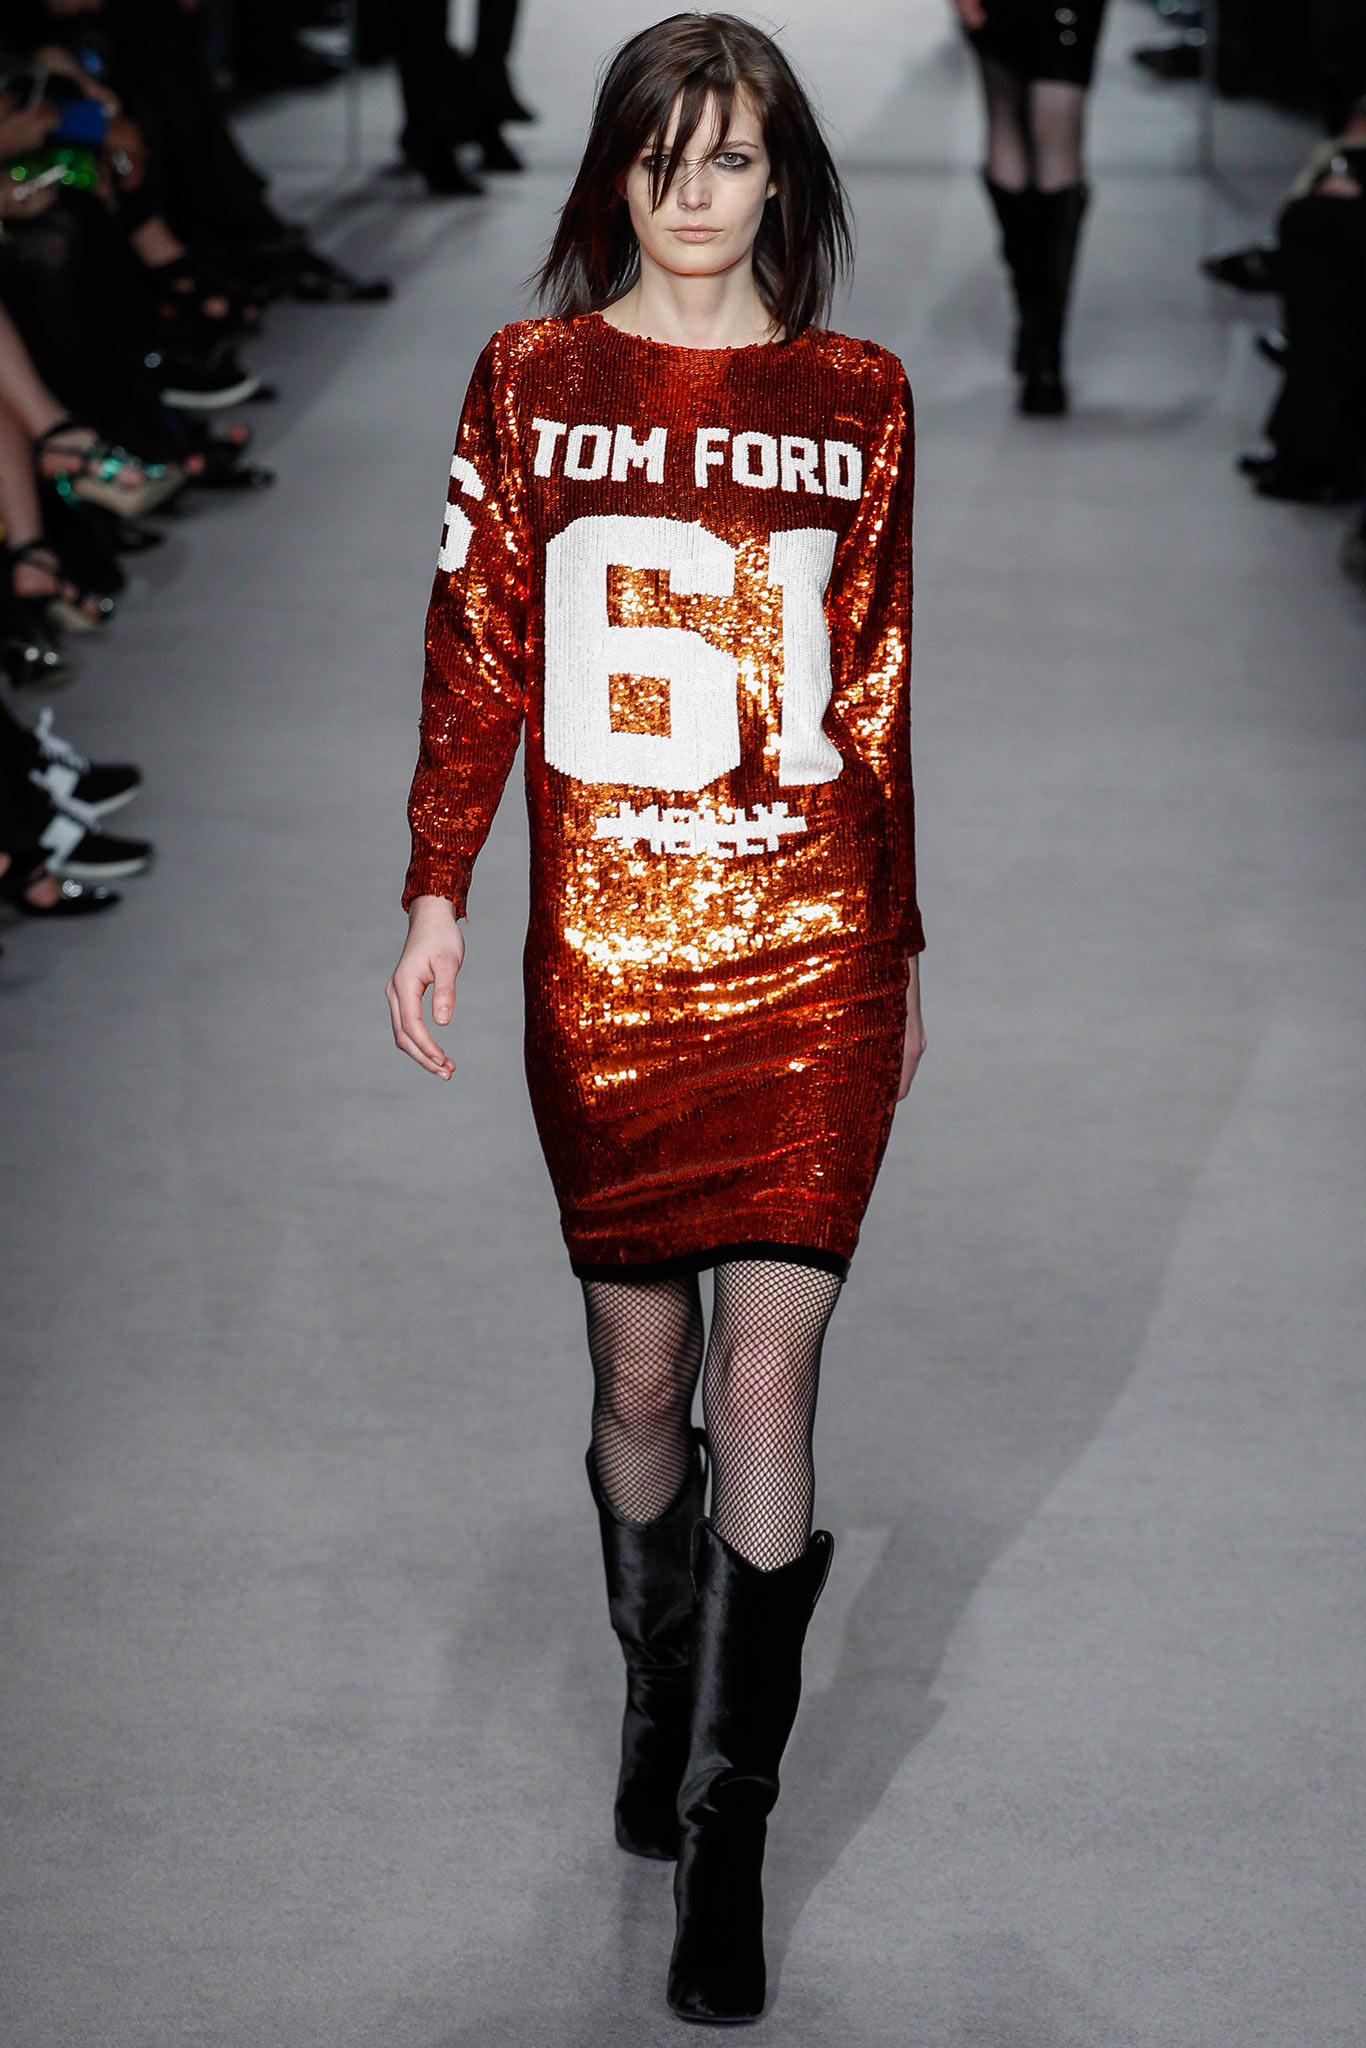 Tom Ford 2014 Autumn Winter Collection